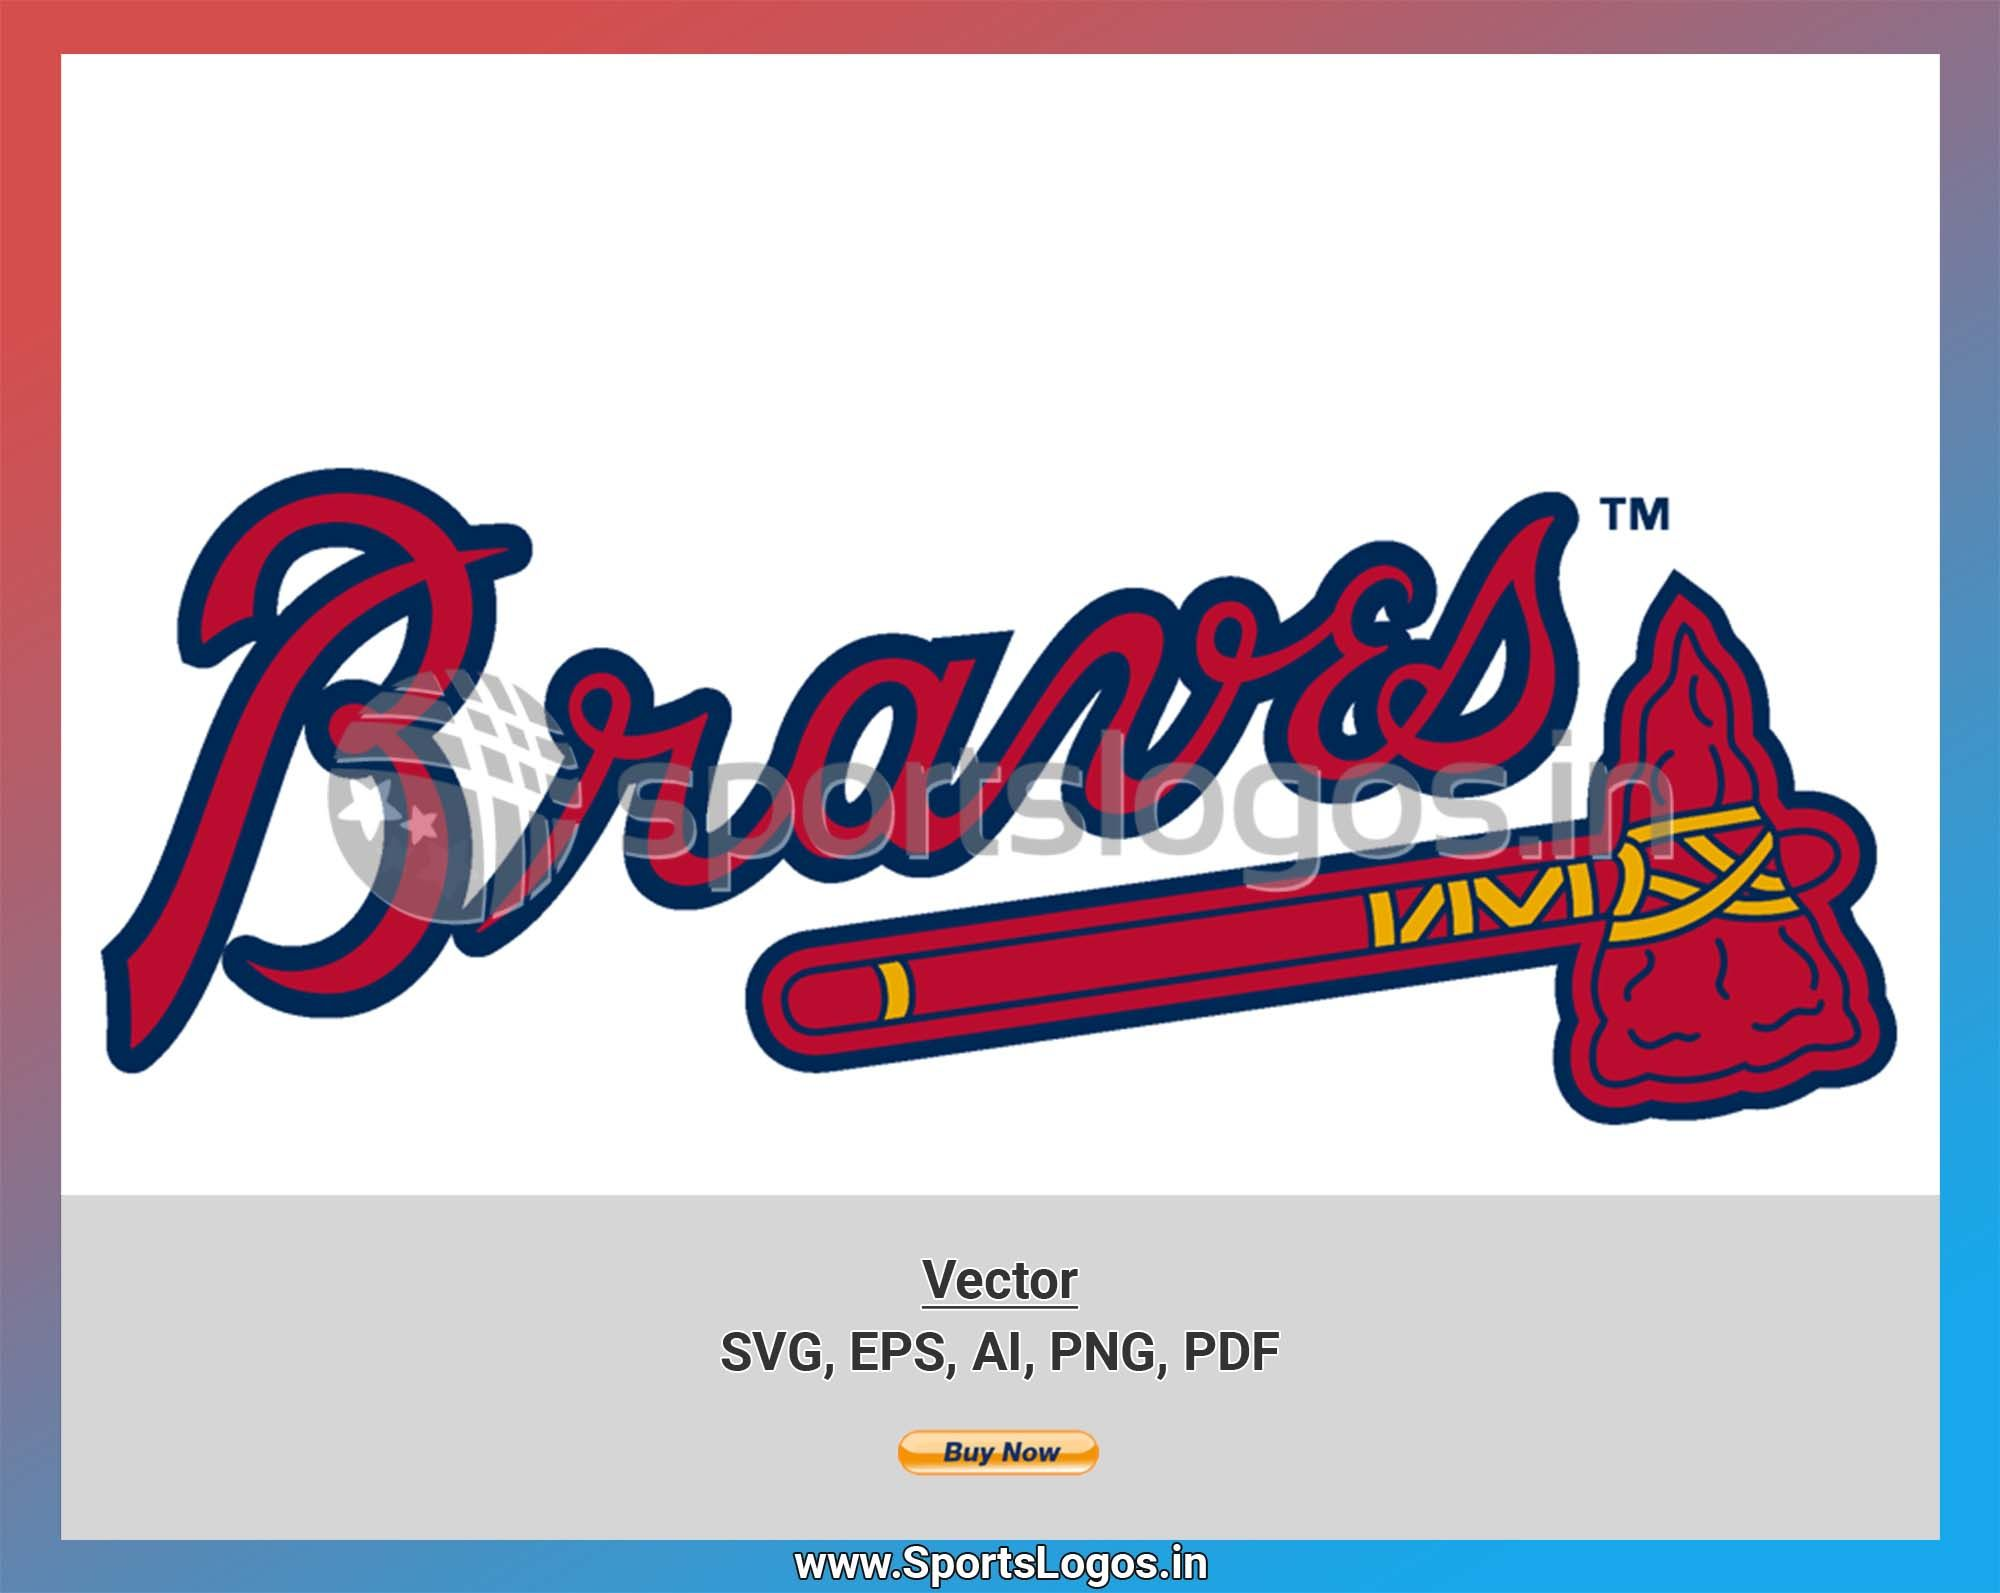 Atlanta Braves Baseball Sports Vector Svg Logo In 5 Formats Spln000203 Sports Logos Embroidery Vector For Nfl Nba Nhl Mlb Milb And More In 2020 Atlanta Braves Baseball Atlanta Braves Embroidery Logo